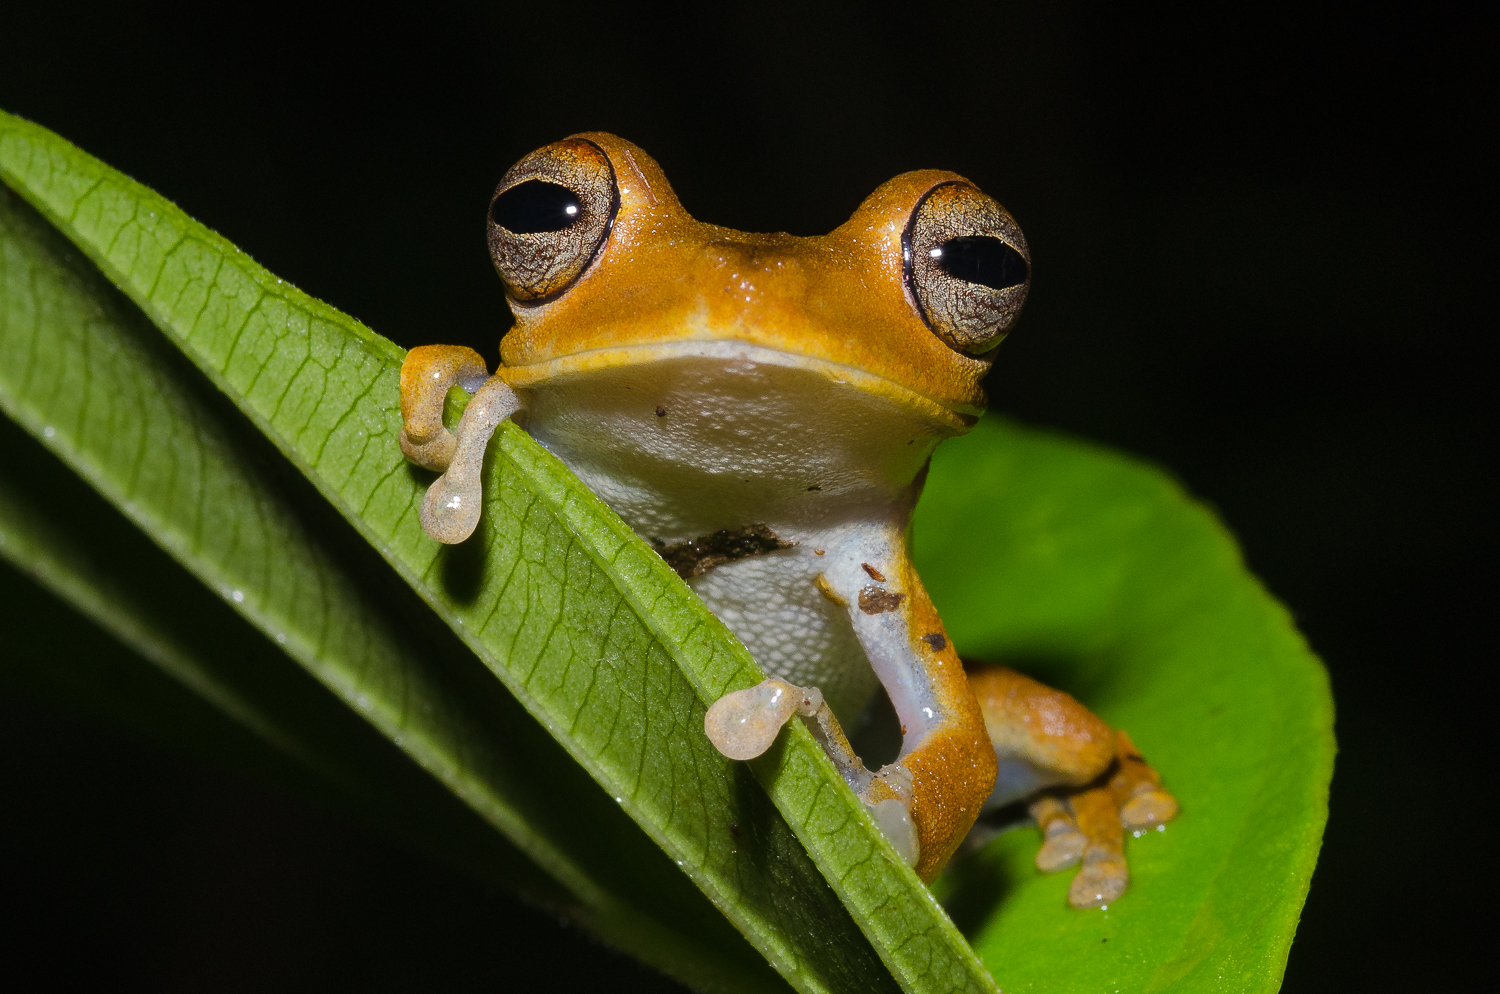 One of the many charismatic frog species, Hypsiboas calcarata.